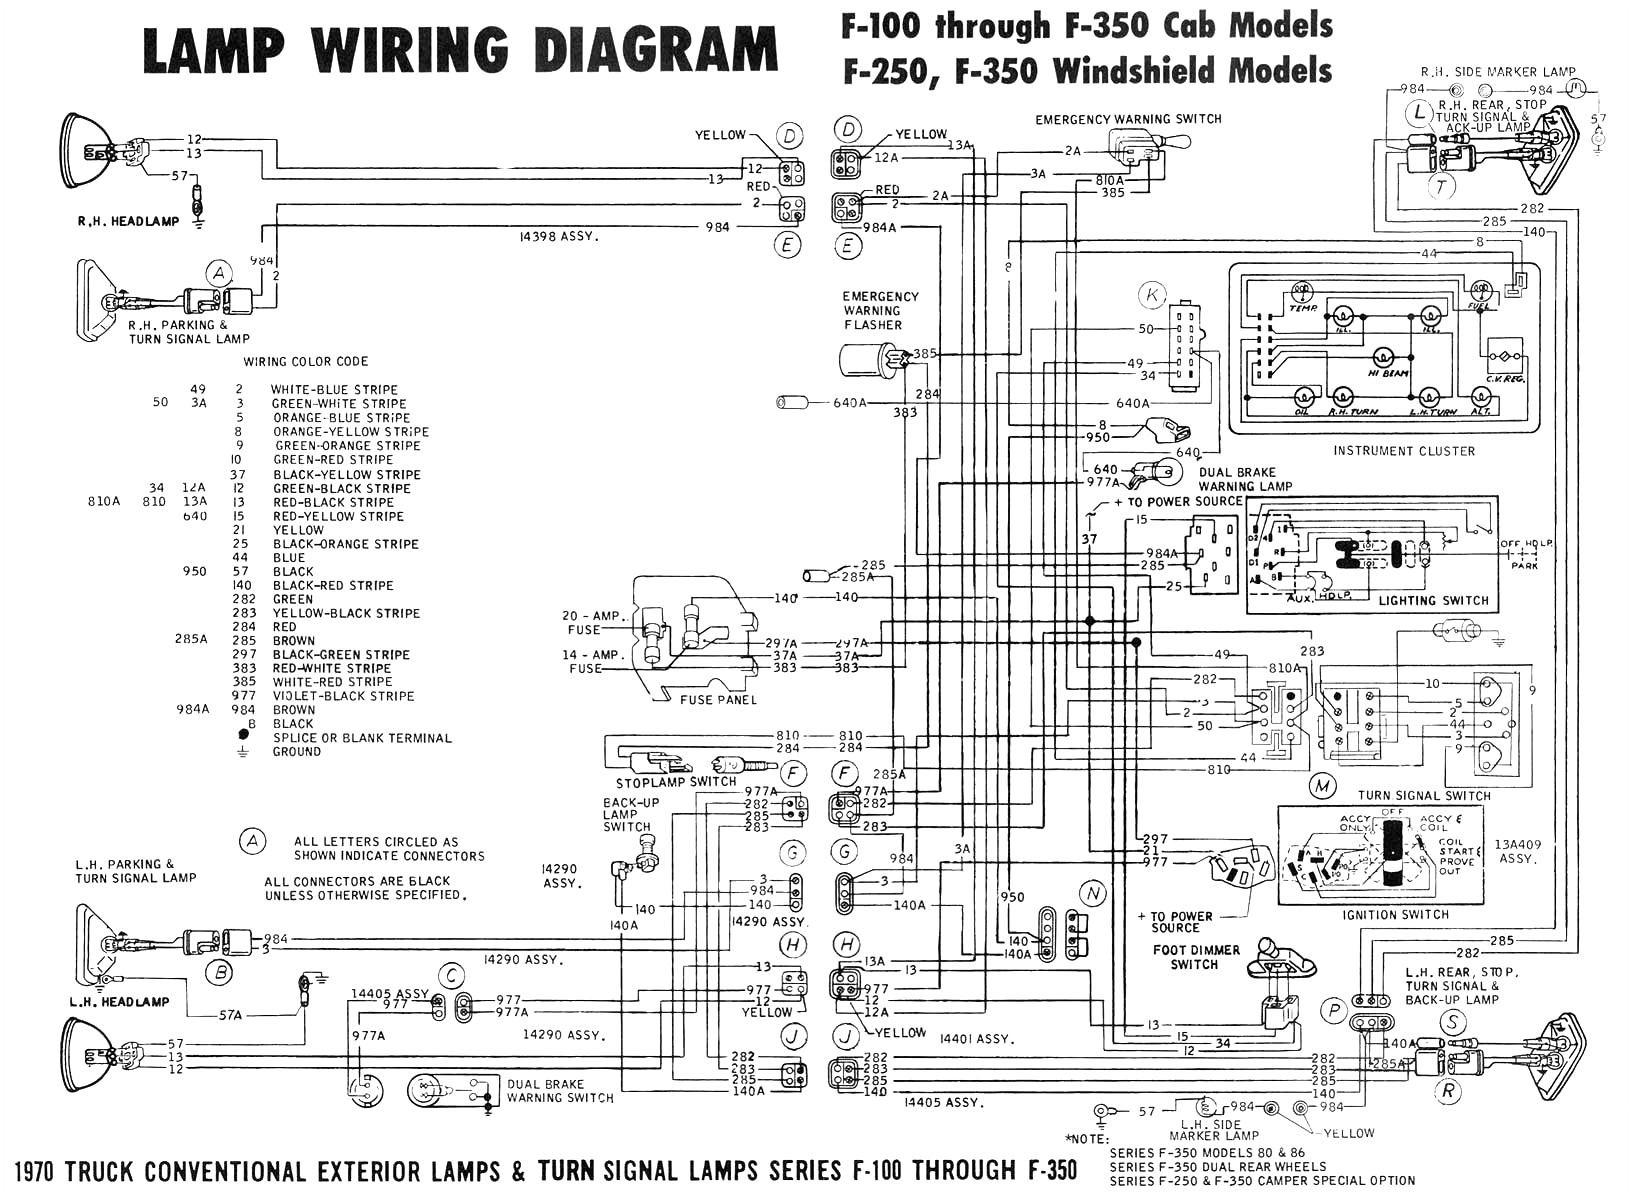 2002 f250 ignition wiring diagram wiring diagram features ignition wiring diagram 2002 7 3 powerstroke